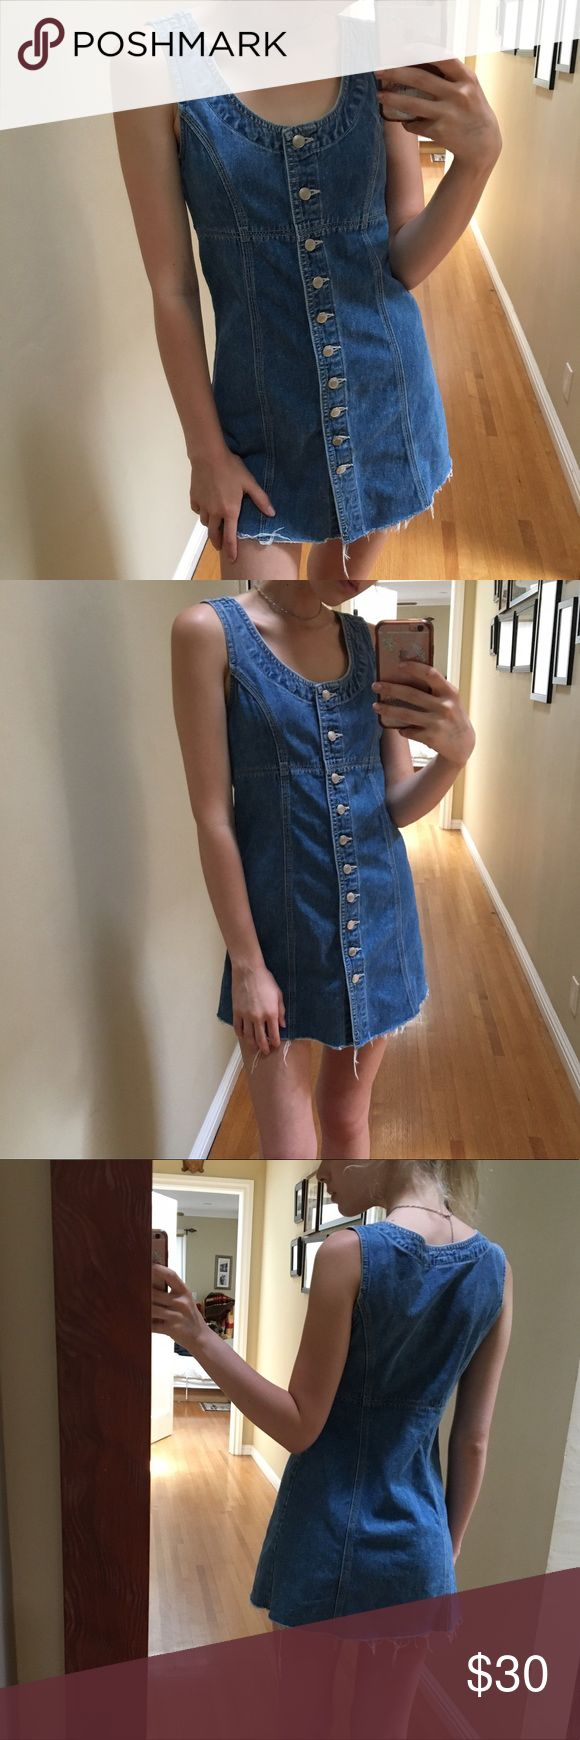 vintage button up denim dress the CUTEST vintage denim dress i have ever owned but my dumbass cut it too short :(((( it buttons up and has an a-line fit! would best fit an XS petite (shown on 5'7 23w) Vintage Dresses Mini